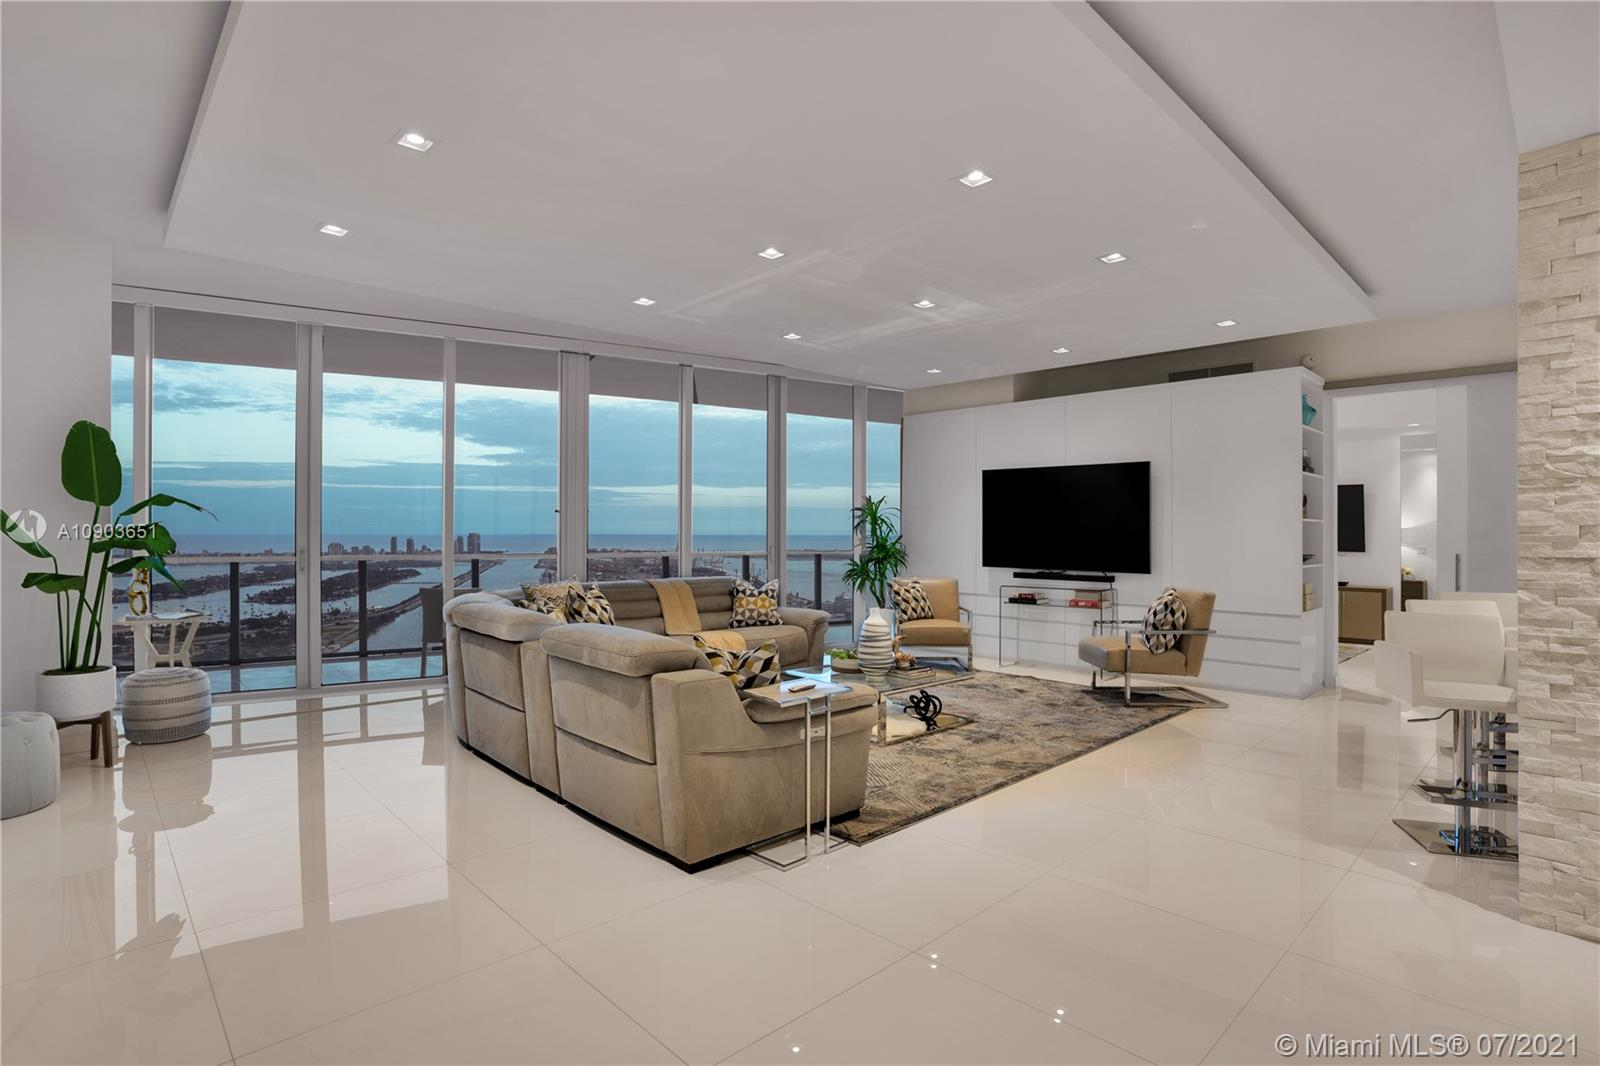 One of a kind combined unit at Marquis Residences .This 4 bds/4.5 5603/5604 with 2,975 Sq Ft  units comes with 2 Master bedrooms & 2 very Large Junior Suits. Enjoy panoramic Bay & City views from this sky home with one of the largest terraces in the building. Finished white porcelain glass floors throughout. lacquer cabinets in kitchen and baths, upgraded lighting floating ceiling,  laundry room with 2 washers & 2 dryers, Custom frosted glass doors. This unit is perfect for entertaining with a total of 4 elevators that open right into the unit. Unit has 2 deeded parking spaces. Marquis offers 5 star amenities 24 hour security, concierge, valet, two pools, a spa, & fitness center. Walk to sports & cultural venues, entertainment, dining. Pet friendly. Easy to show Tenant has vacated th eunit